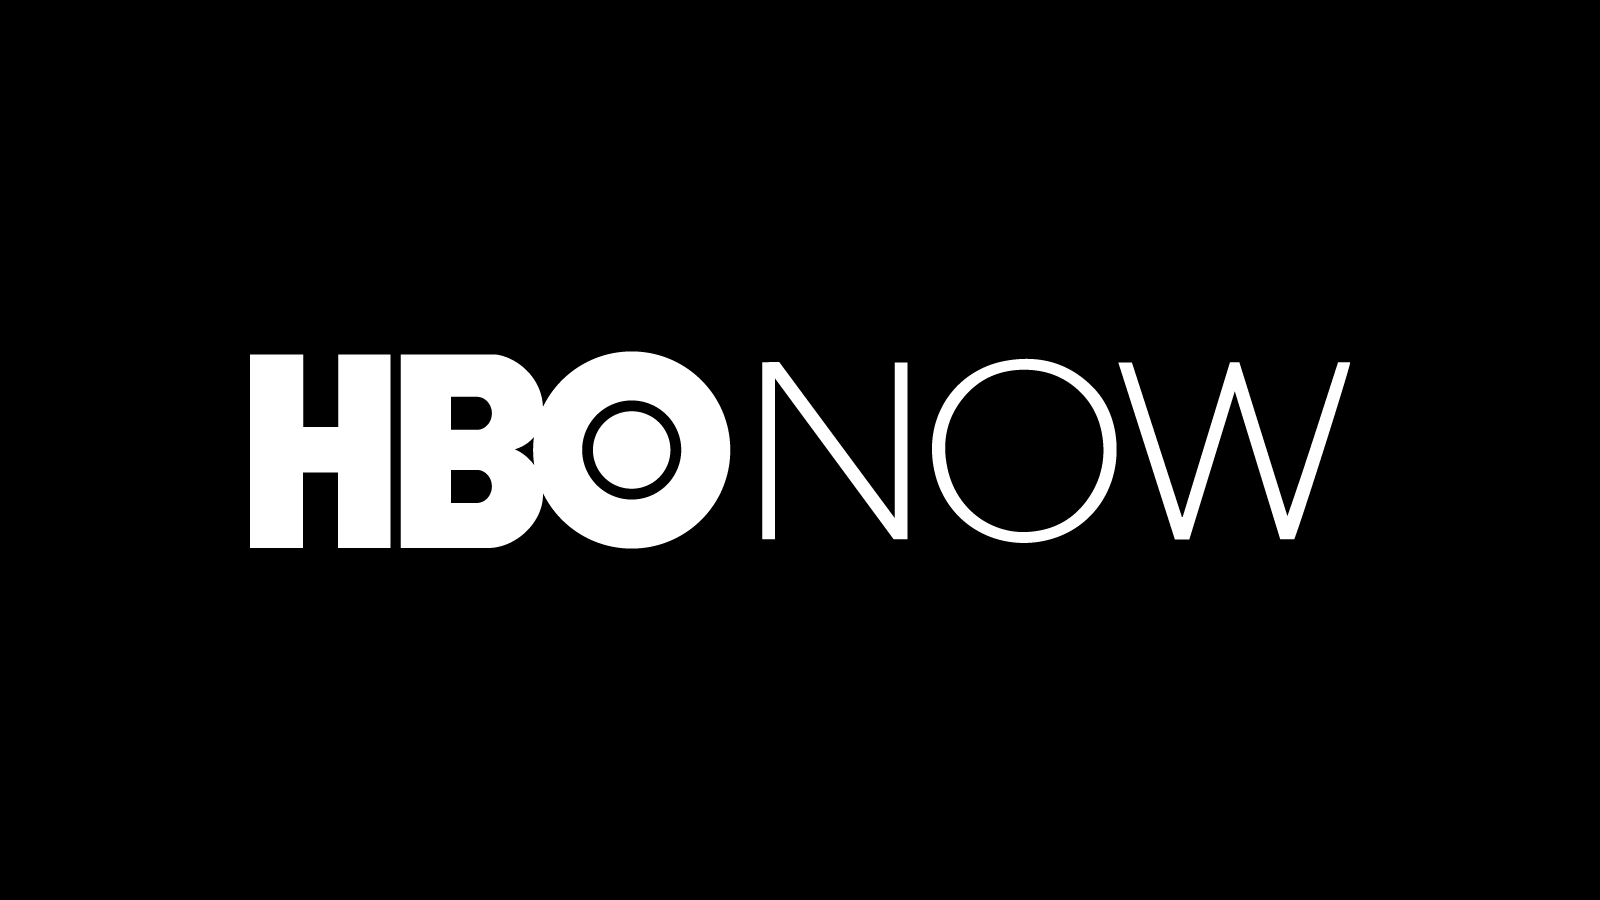 10 Common HBO Now Problems & Fixes